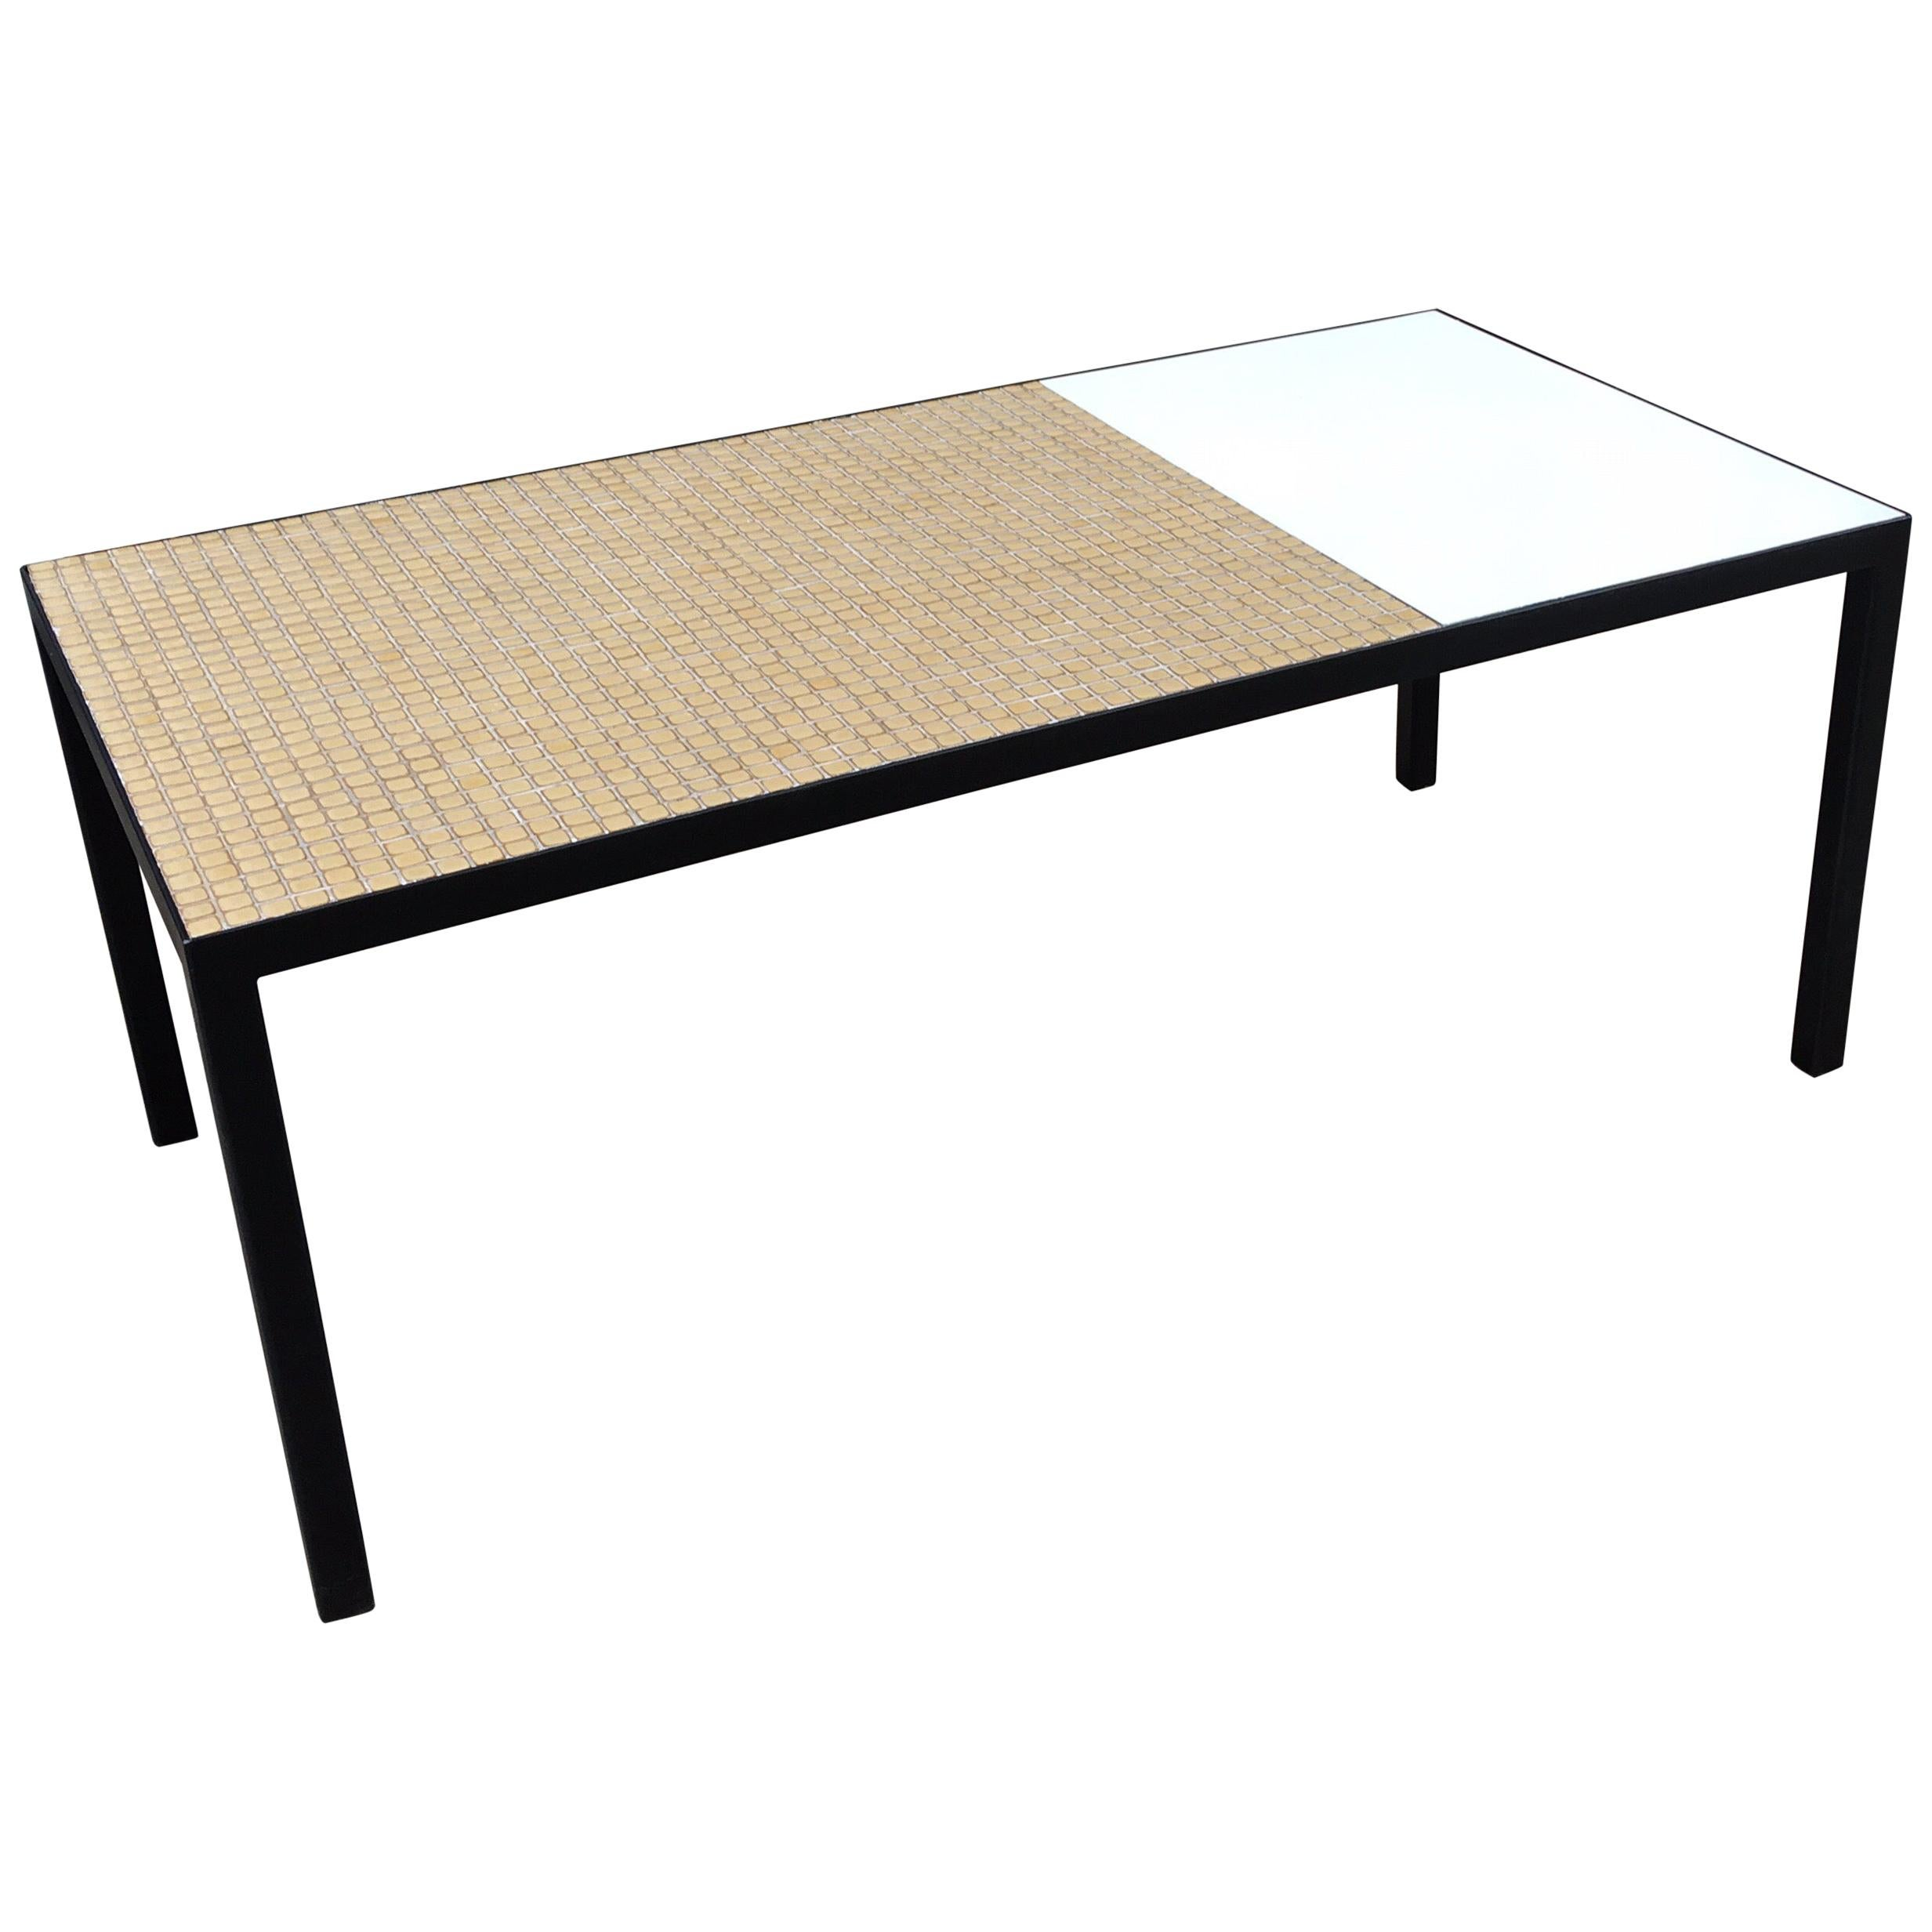 Steel Frame Coffee Table with Tile and Formica Top